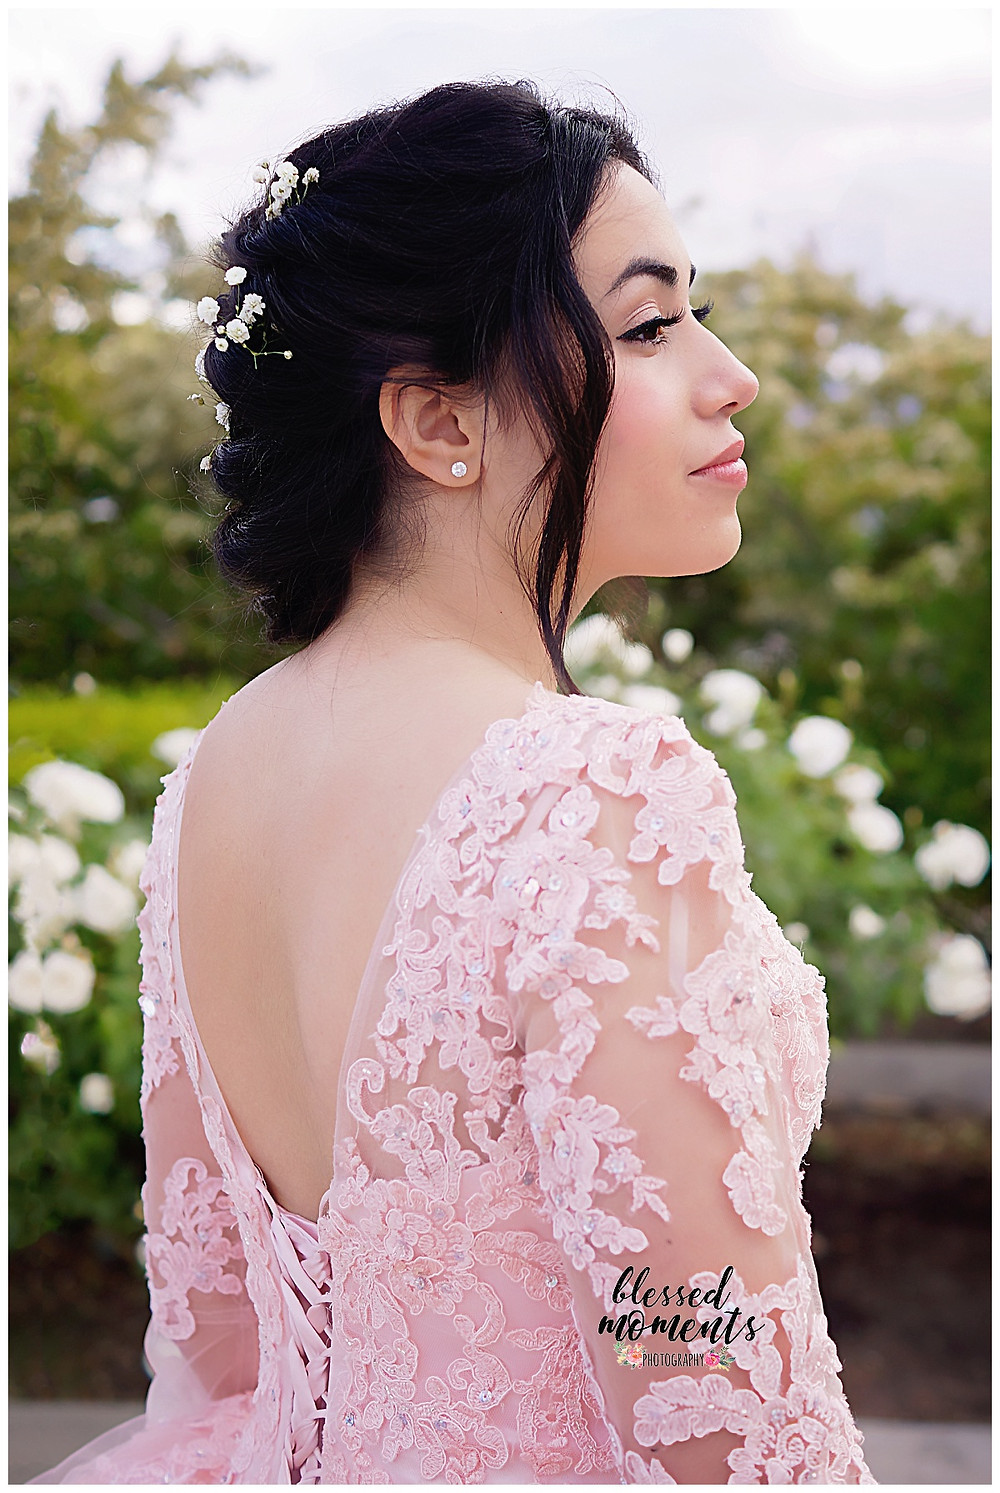 15 year old girl in her Quinceanera  dress photo session at El Paso Rose Garden